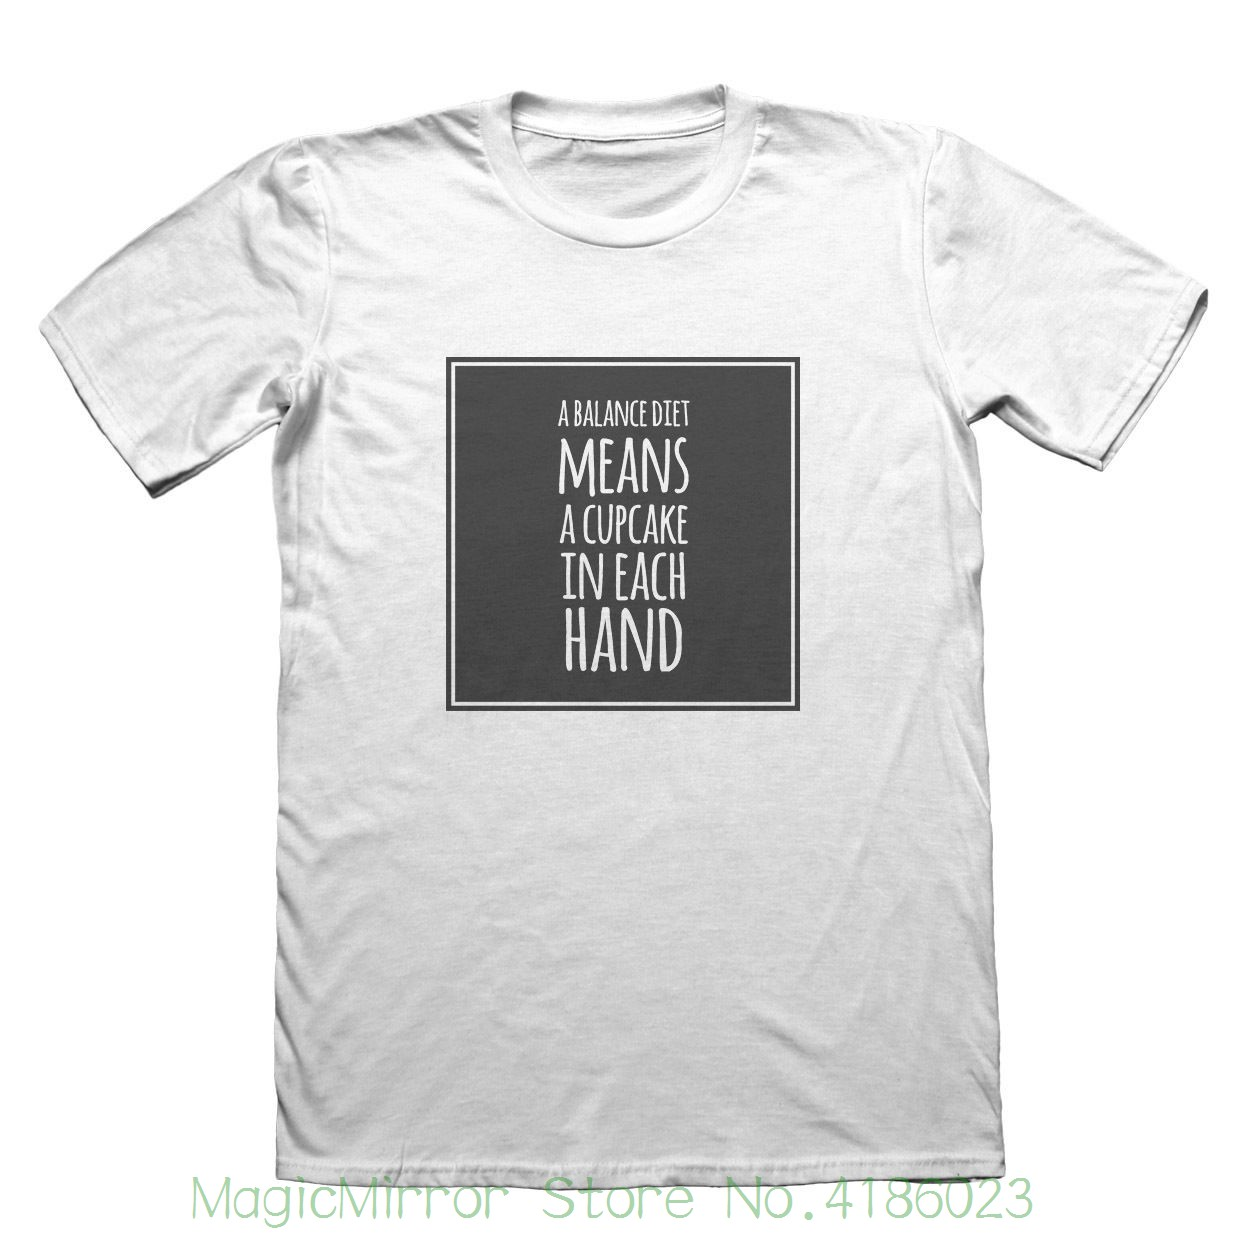 A Balanced Diet T-shirt - Mens Fathers Day Christmas Gift #7552 Cool T-shirts Designs Best Selling Men